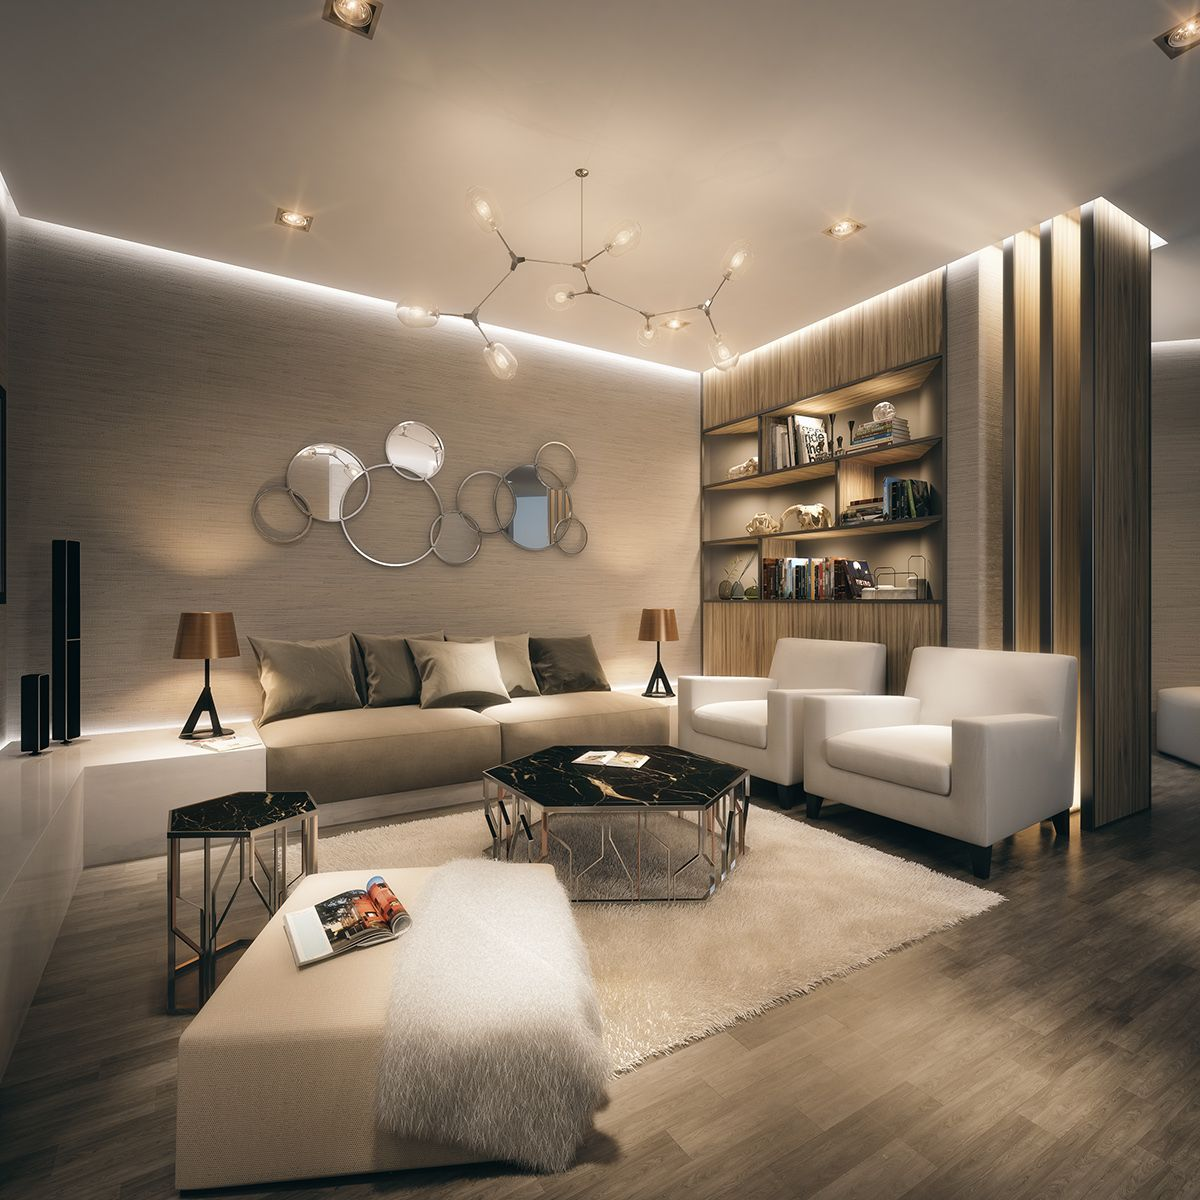 Luxury Home Interior Design Living Rooms: Private Luxury Apartments Complex In Western Africa. Full